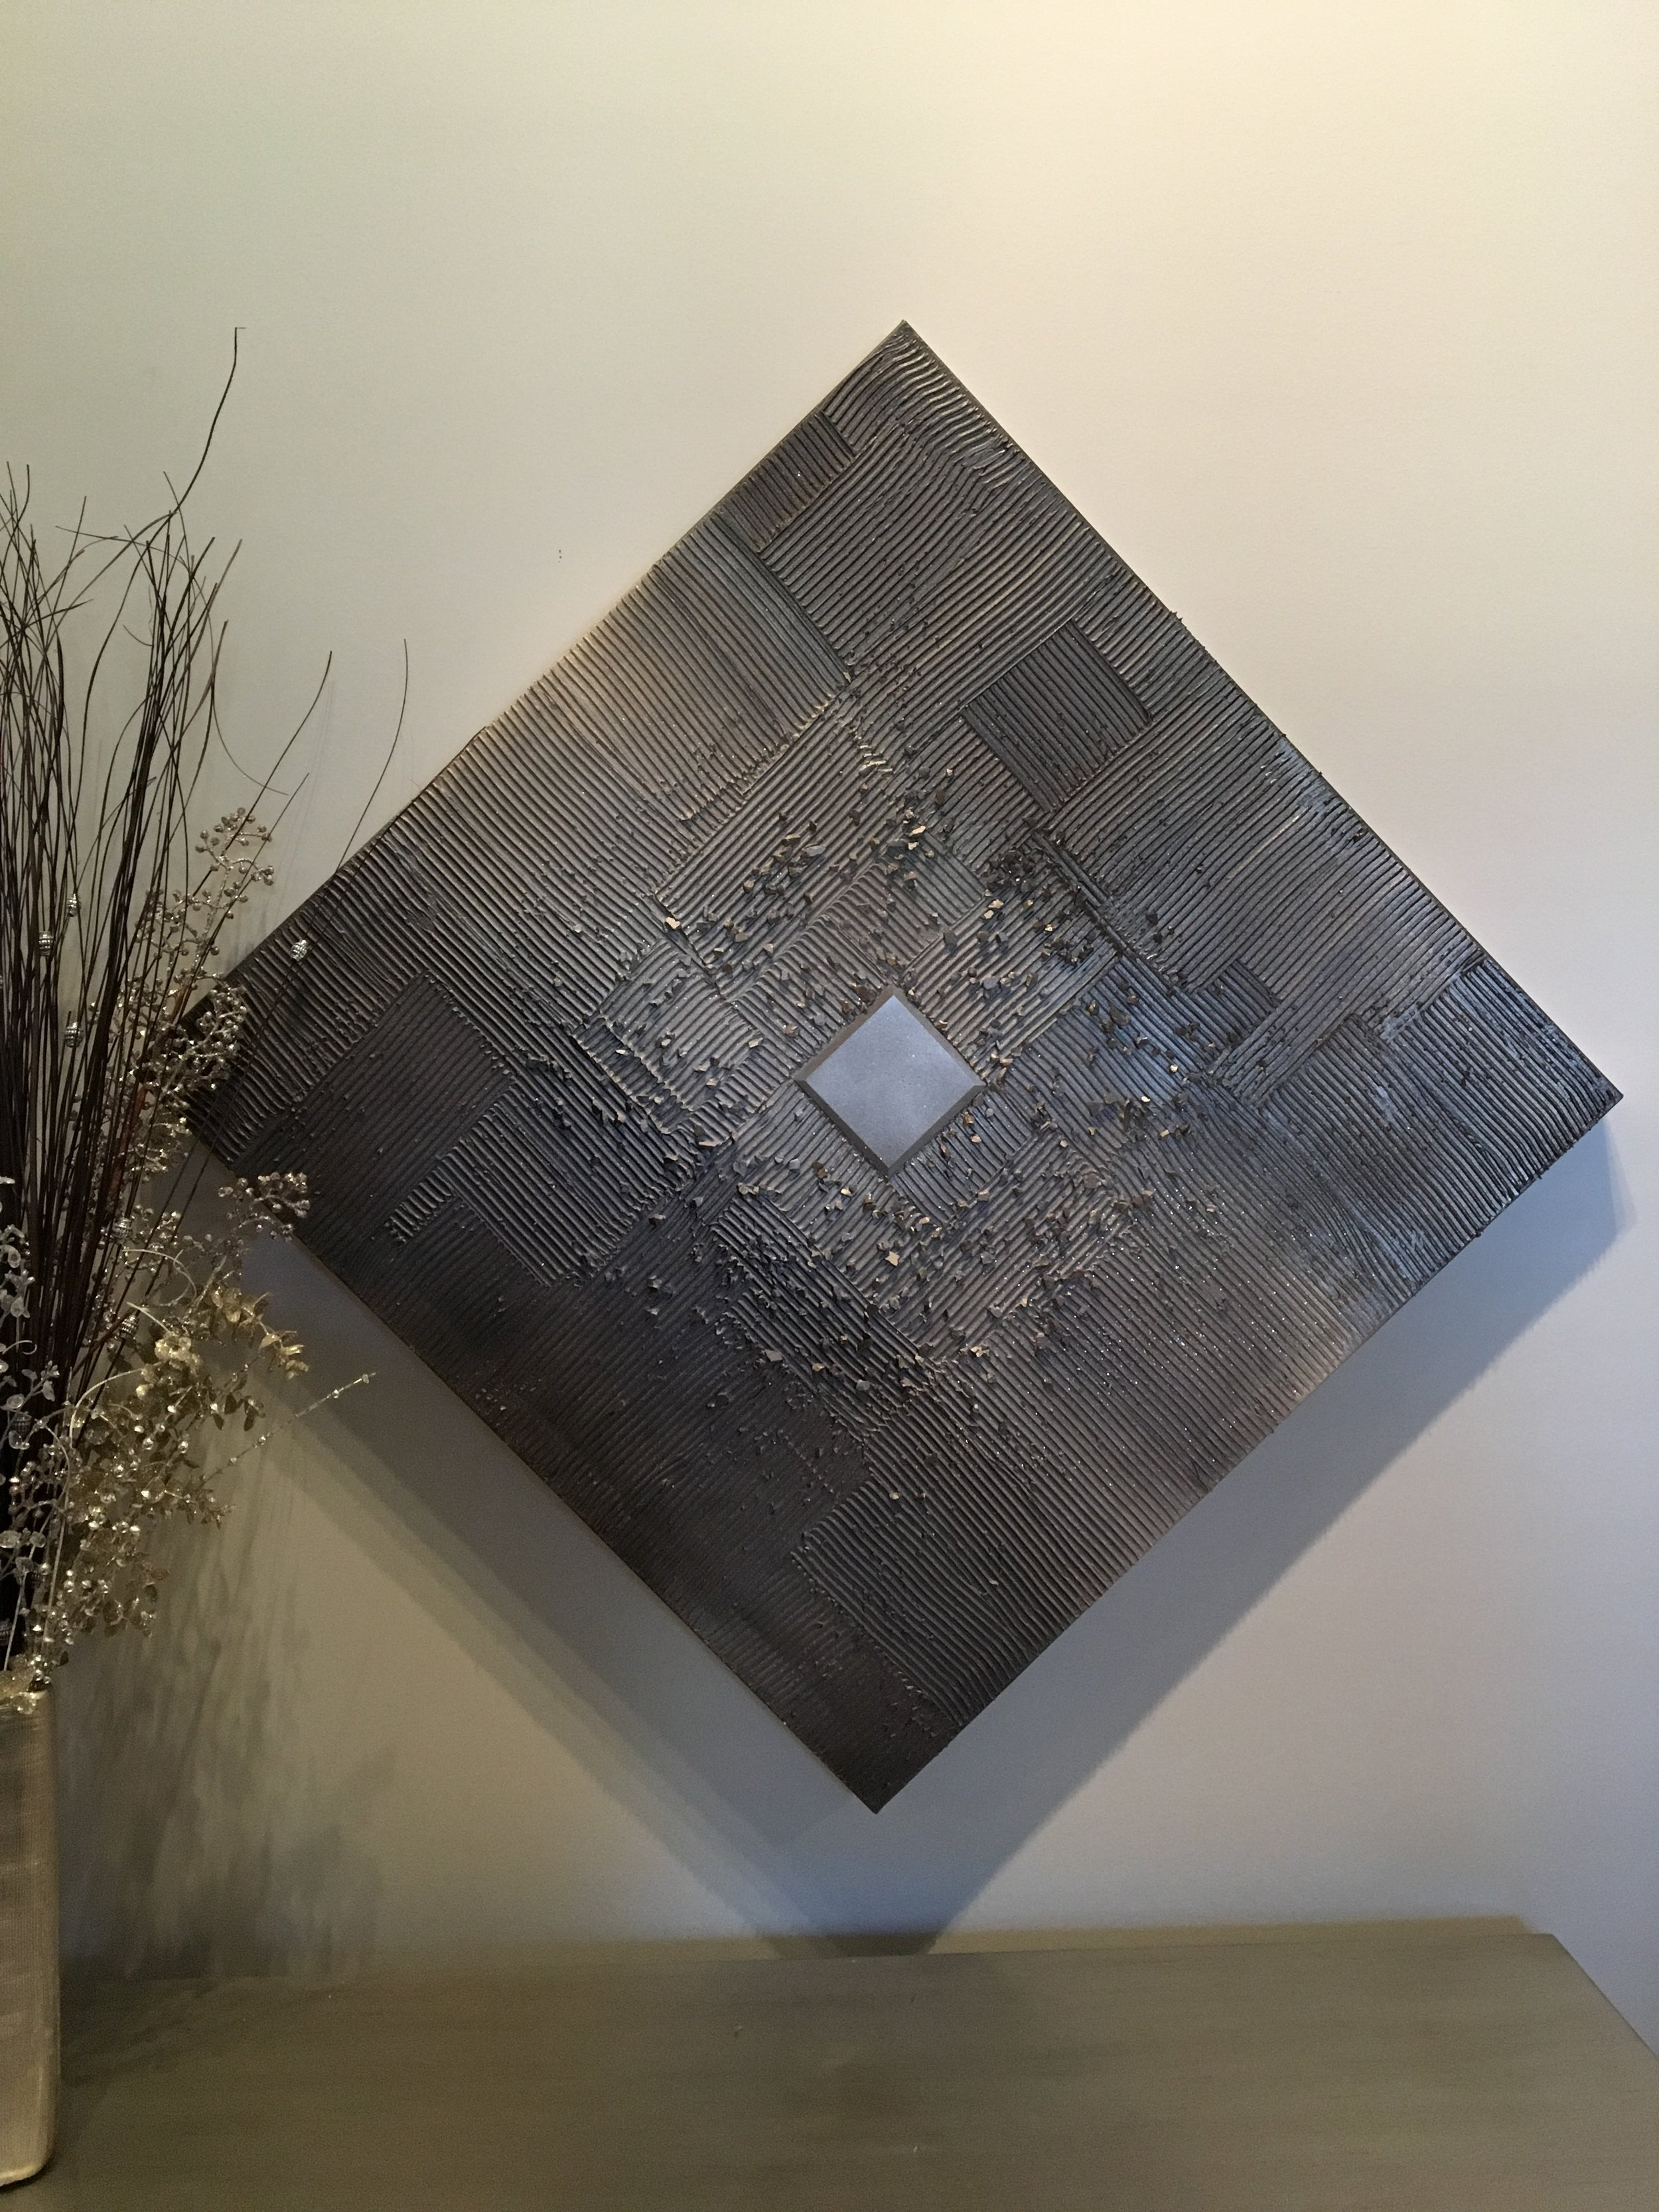 'Bronze Buckle' is a 36x36 with copper, graphite and bronze tones with lots of stones surrounding the center.